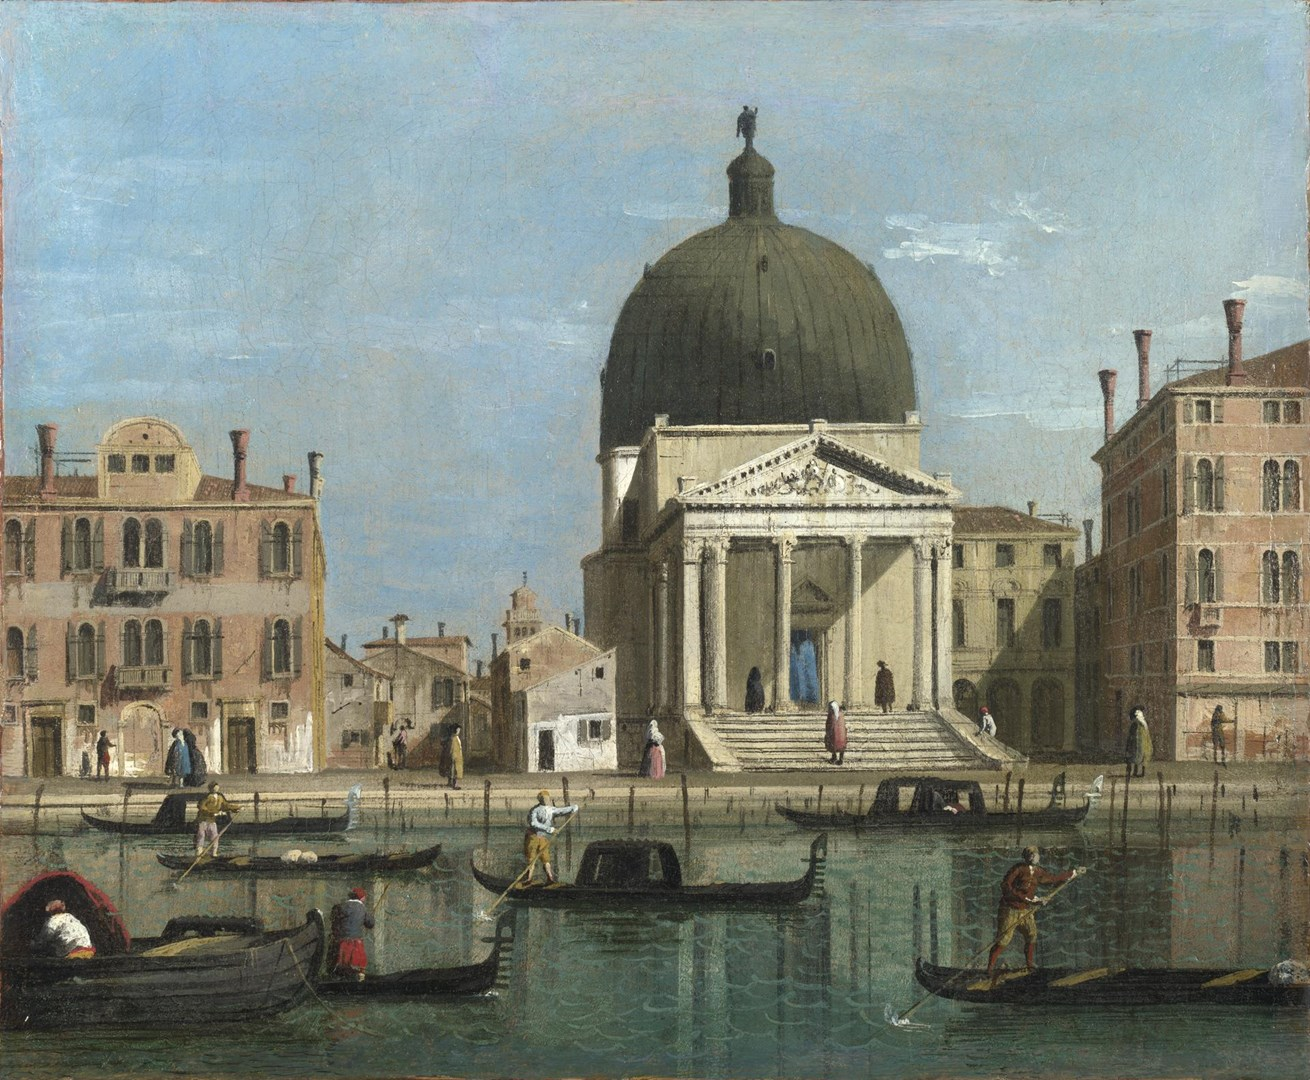 Venice: S. Simeone Piccolo by Follower of Canaletto